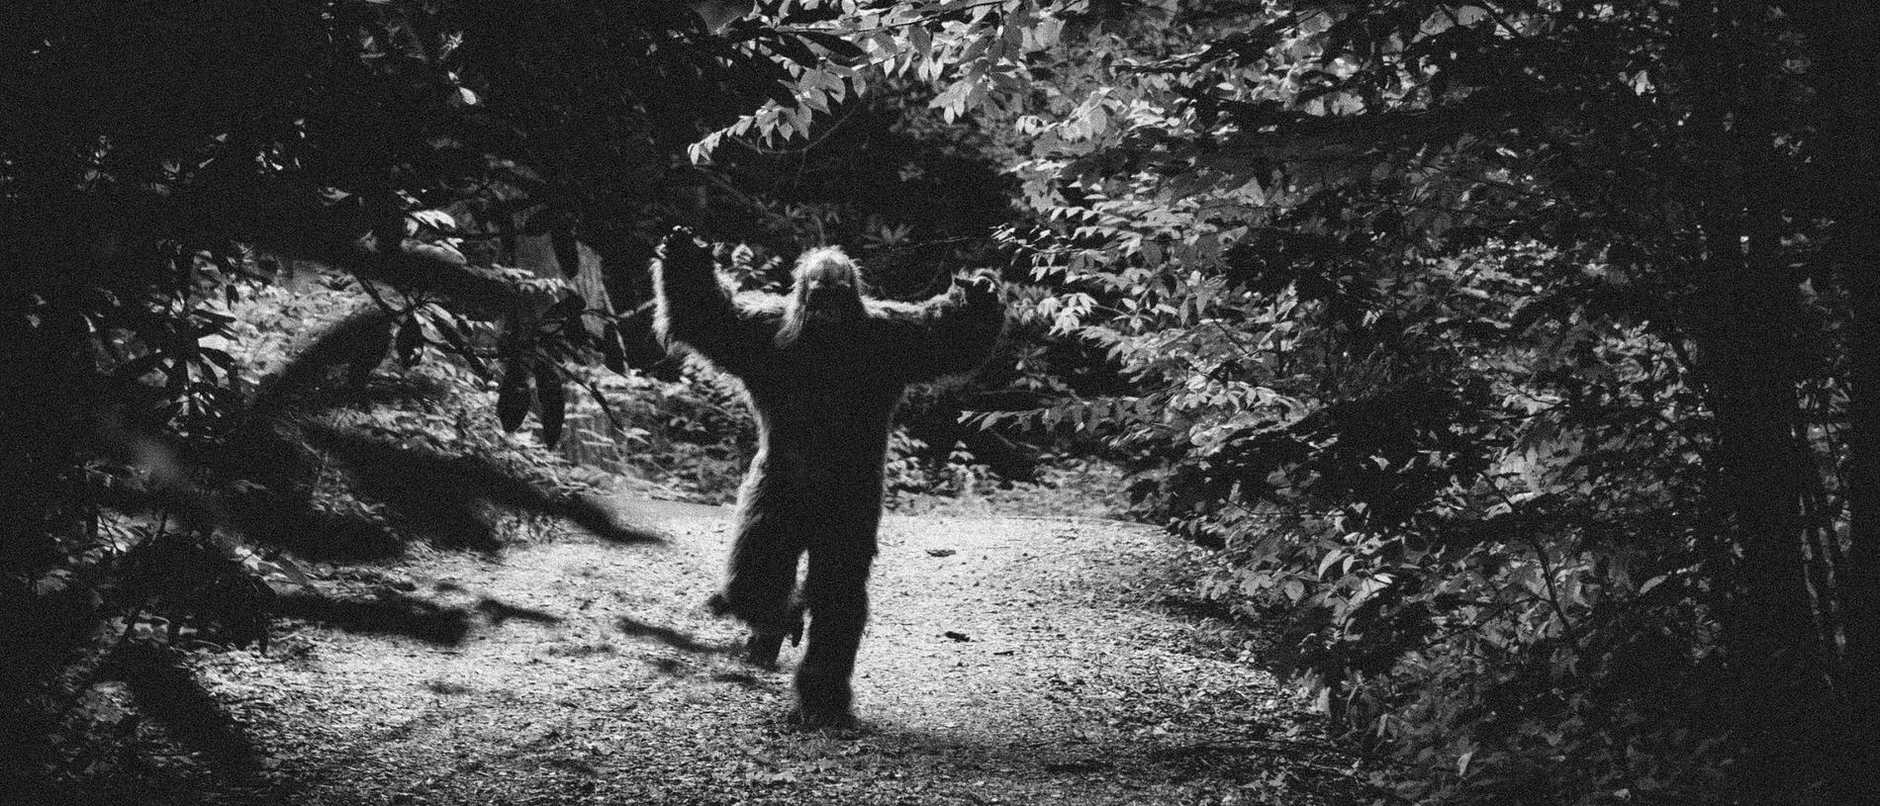 bigfoot attacking